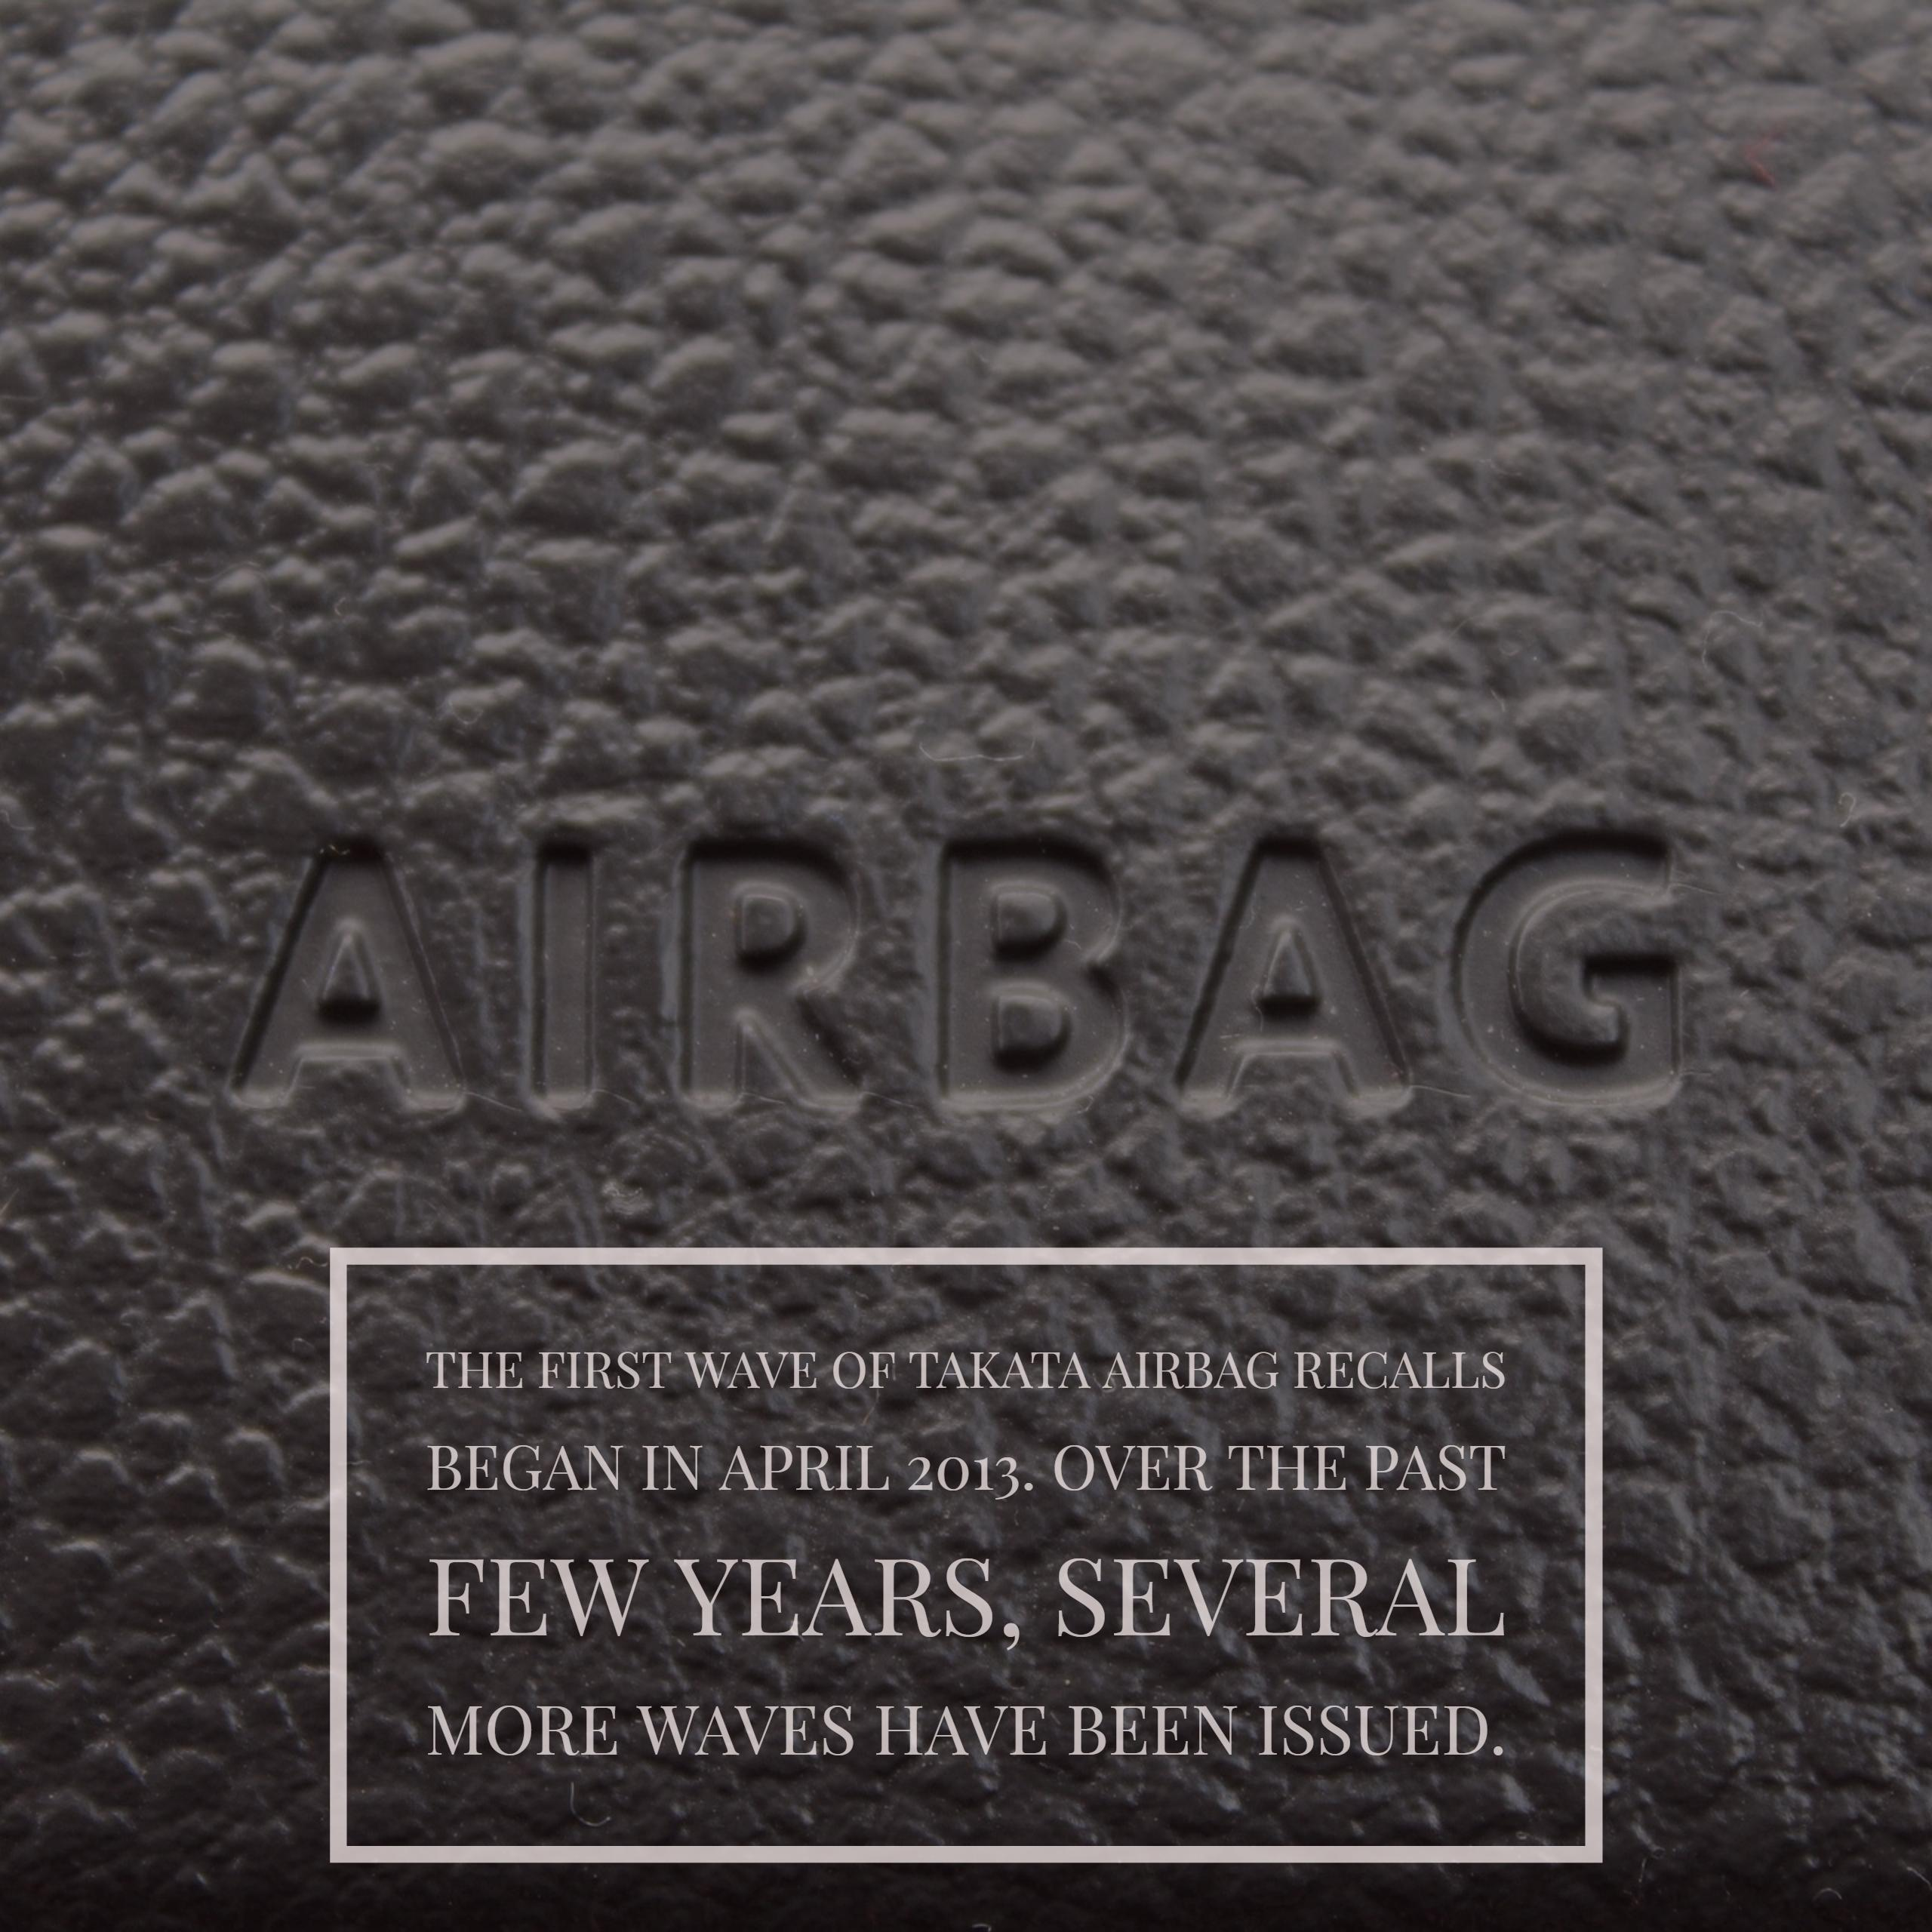 update-takata-airbag-recall-jonathan-c-reiter-mass-disaster-attorney-offers-insight